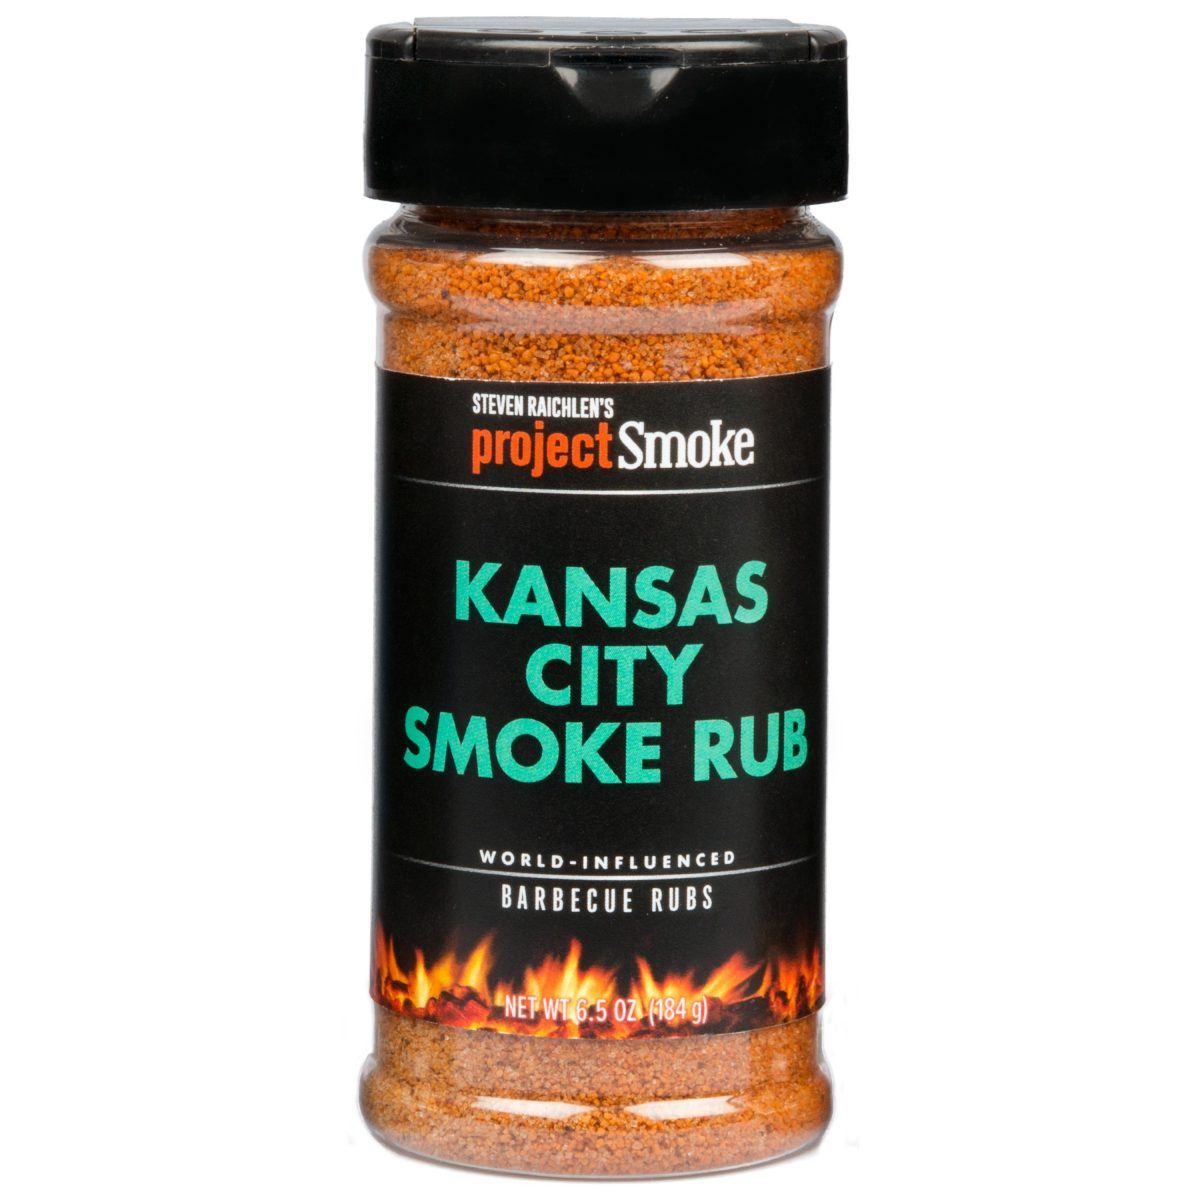 Project Smoke Kansas City Smoke Rub